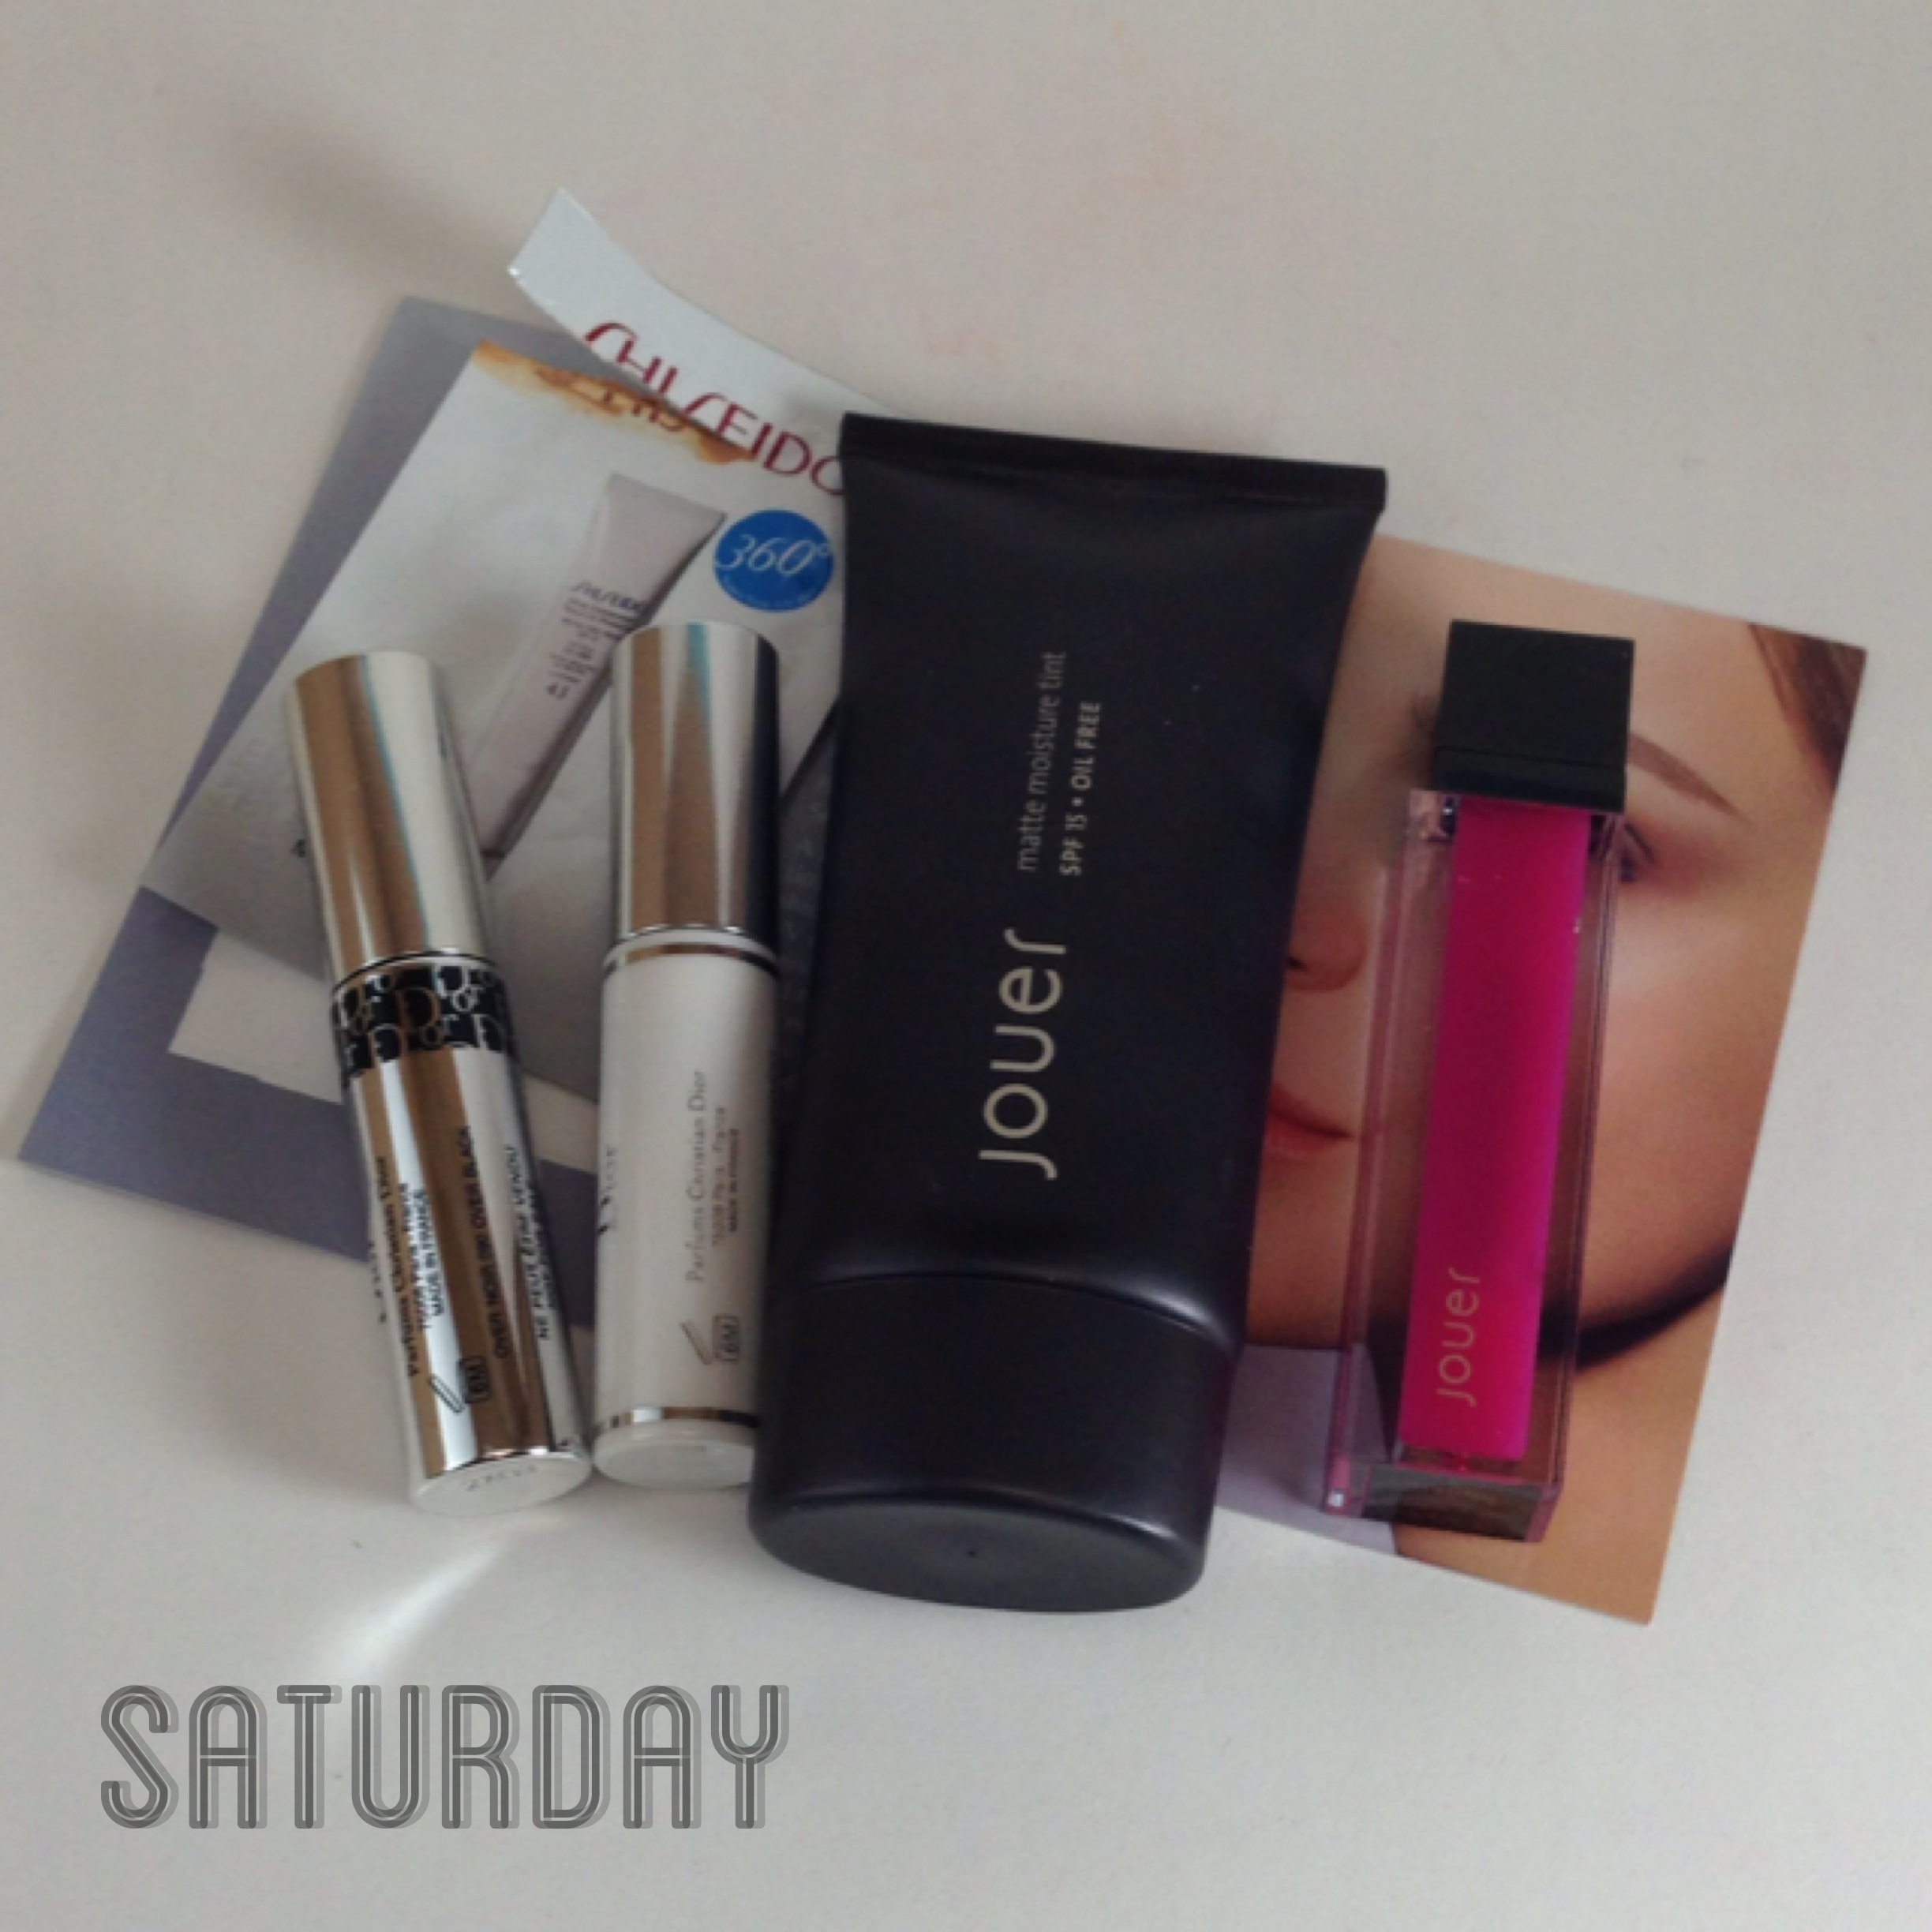 Shiseido Urban Environment Tinted UV Protector in Medium sample, Diorshow Iconic Overcurl, Diorshow Maximizer, Jouer Matte Moisture Tint in Chamomile, Jouer Moisturizing Lip Gloss in Malibu